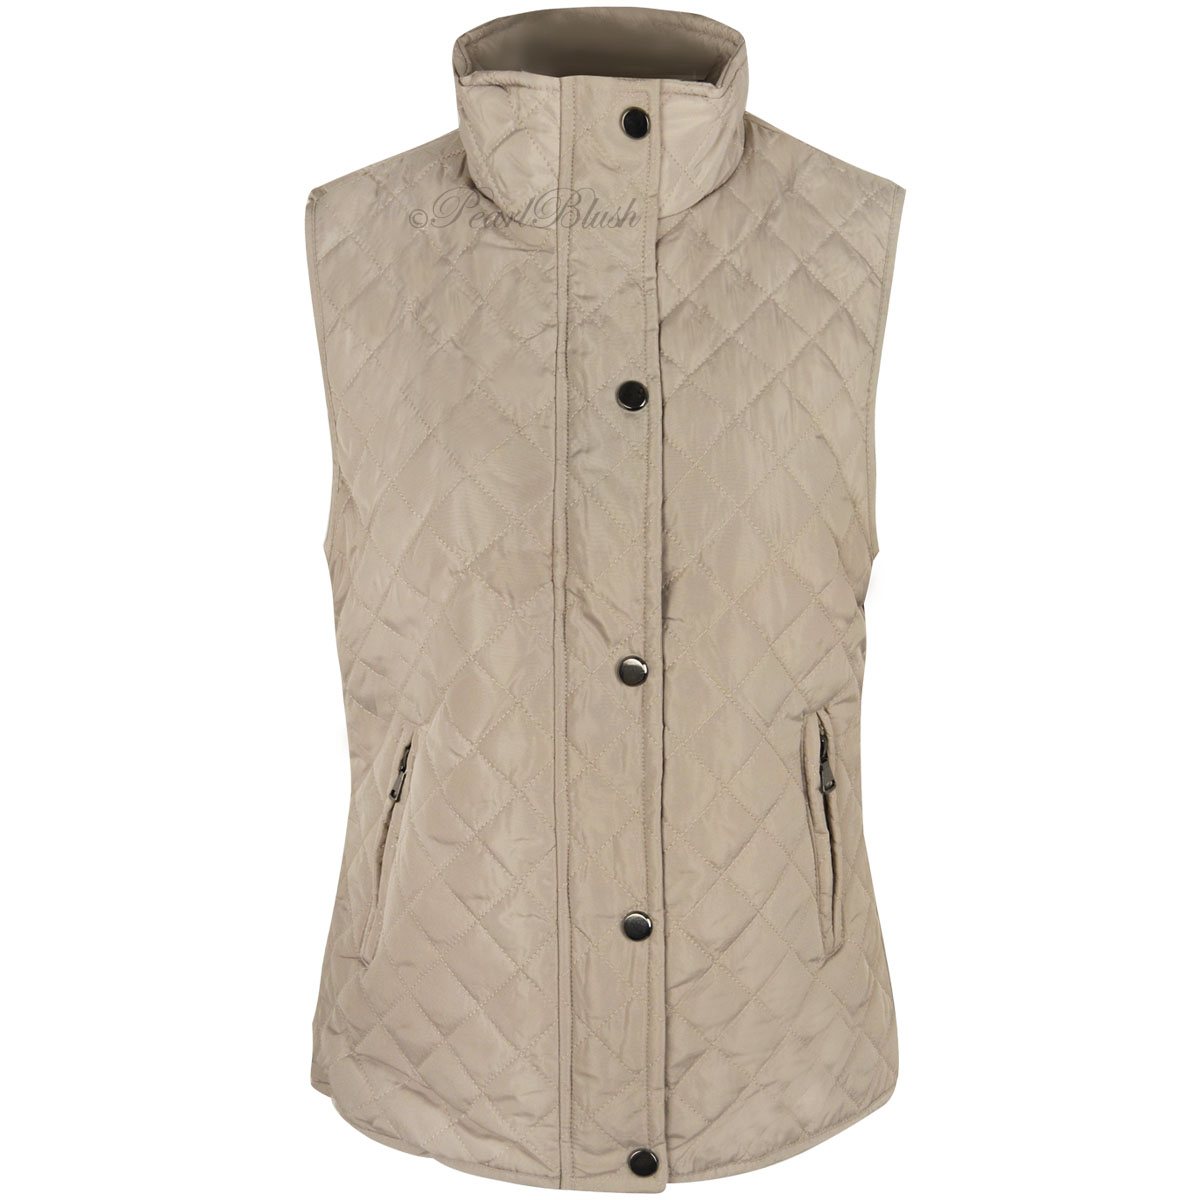 View all ladies clothing Our selection of ladies gilets are ideal for adding style and warmth to any outfit. Featuring quilted and insulated designs as well as padded and fleece gilets, we have a wide variety of choices available. Shop from top brands such as Karrimor, Under Armour, SoulCal, Reebok and Everlast.